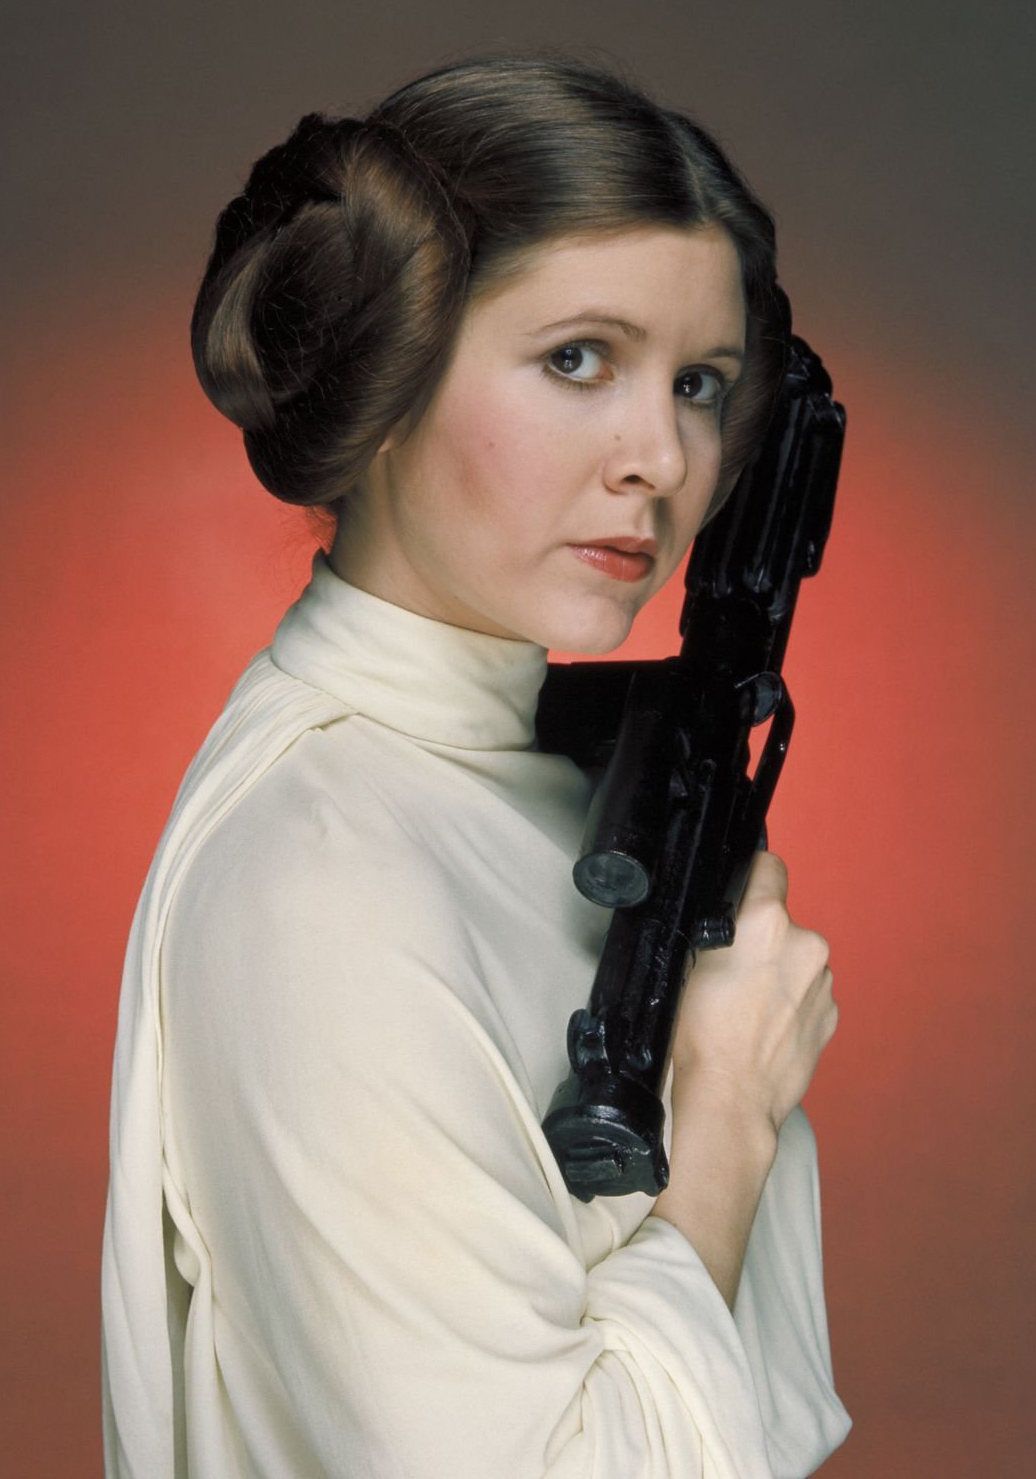 Carrie fisher as princess leia organa still 2